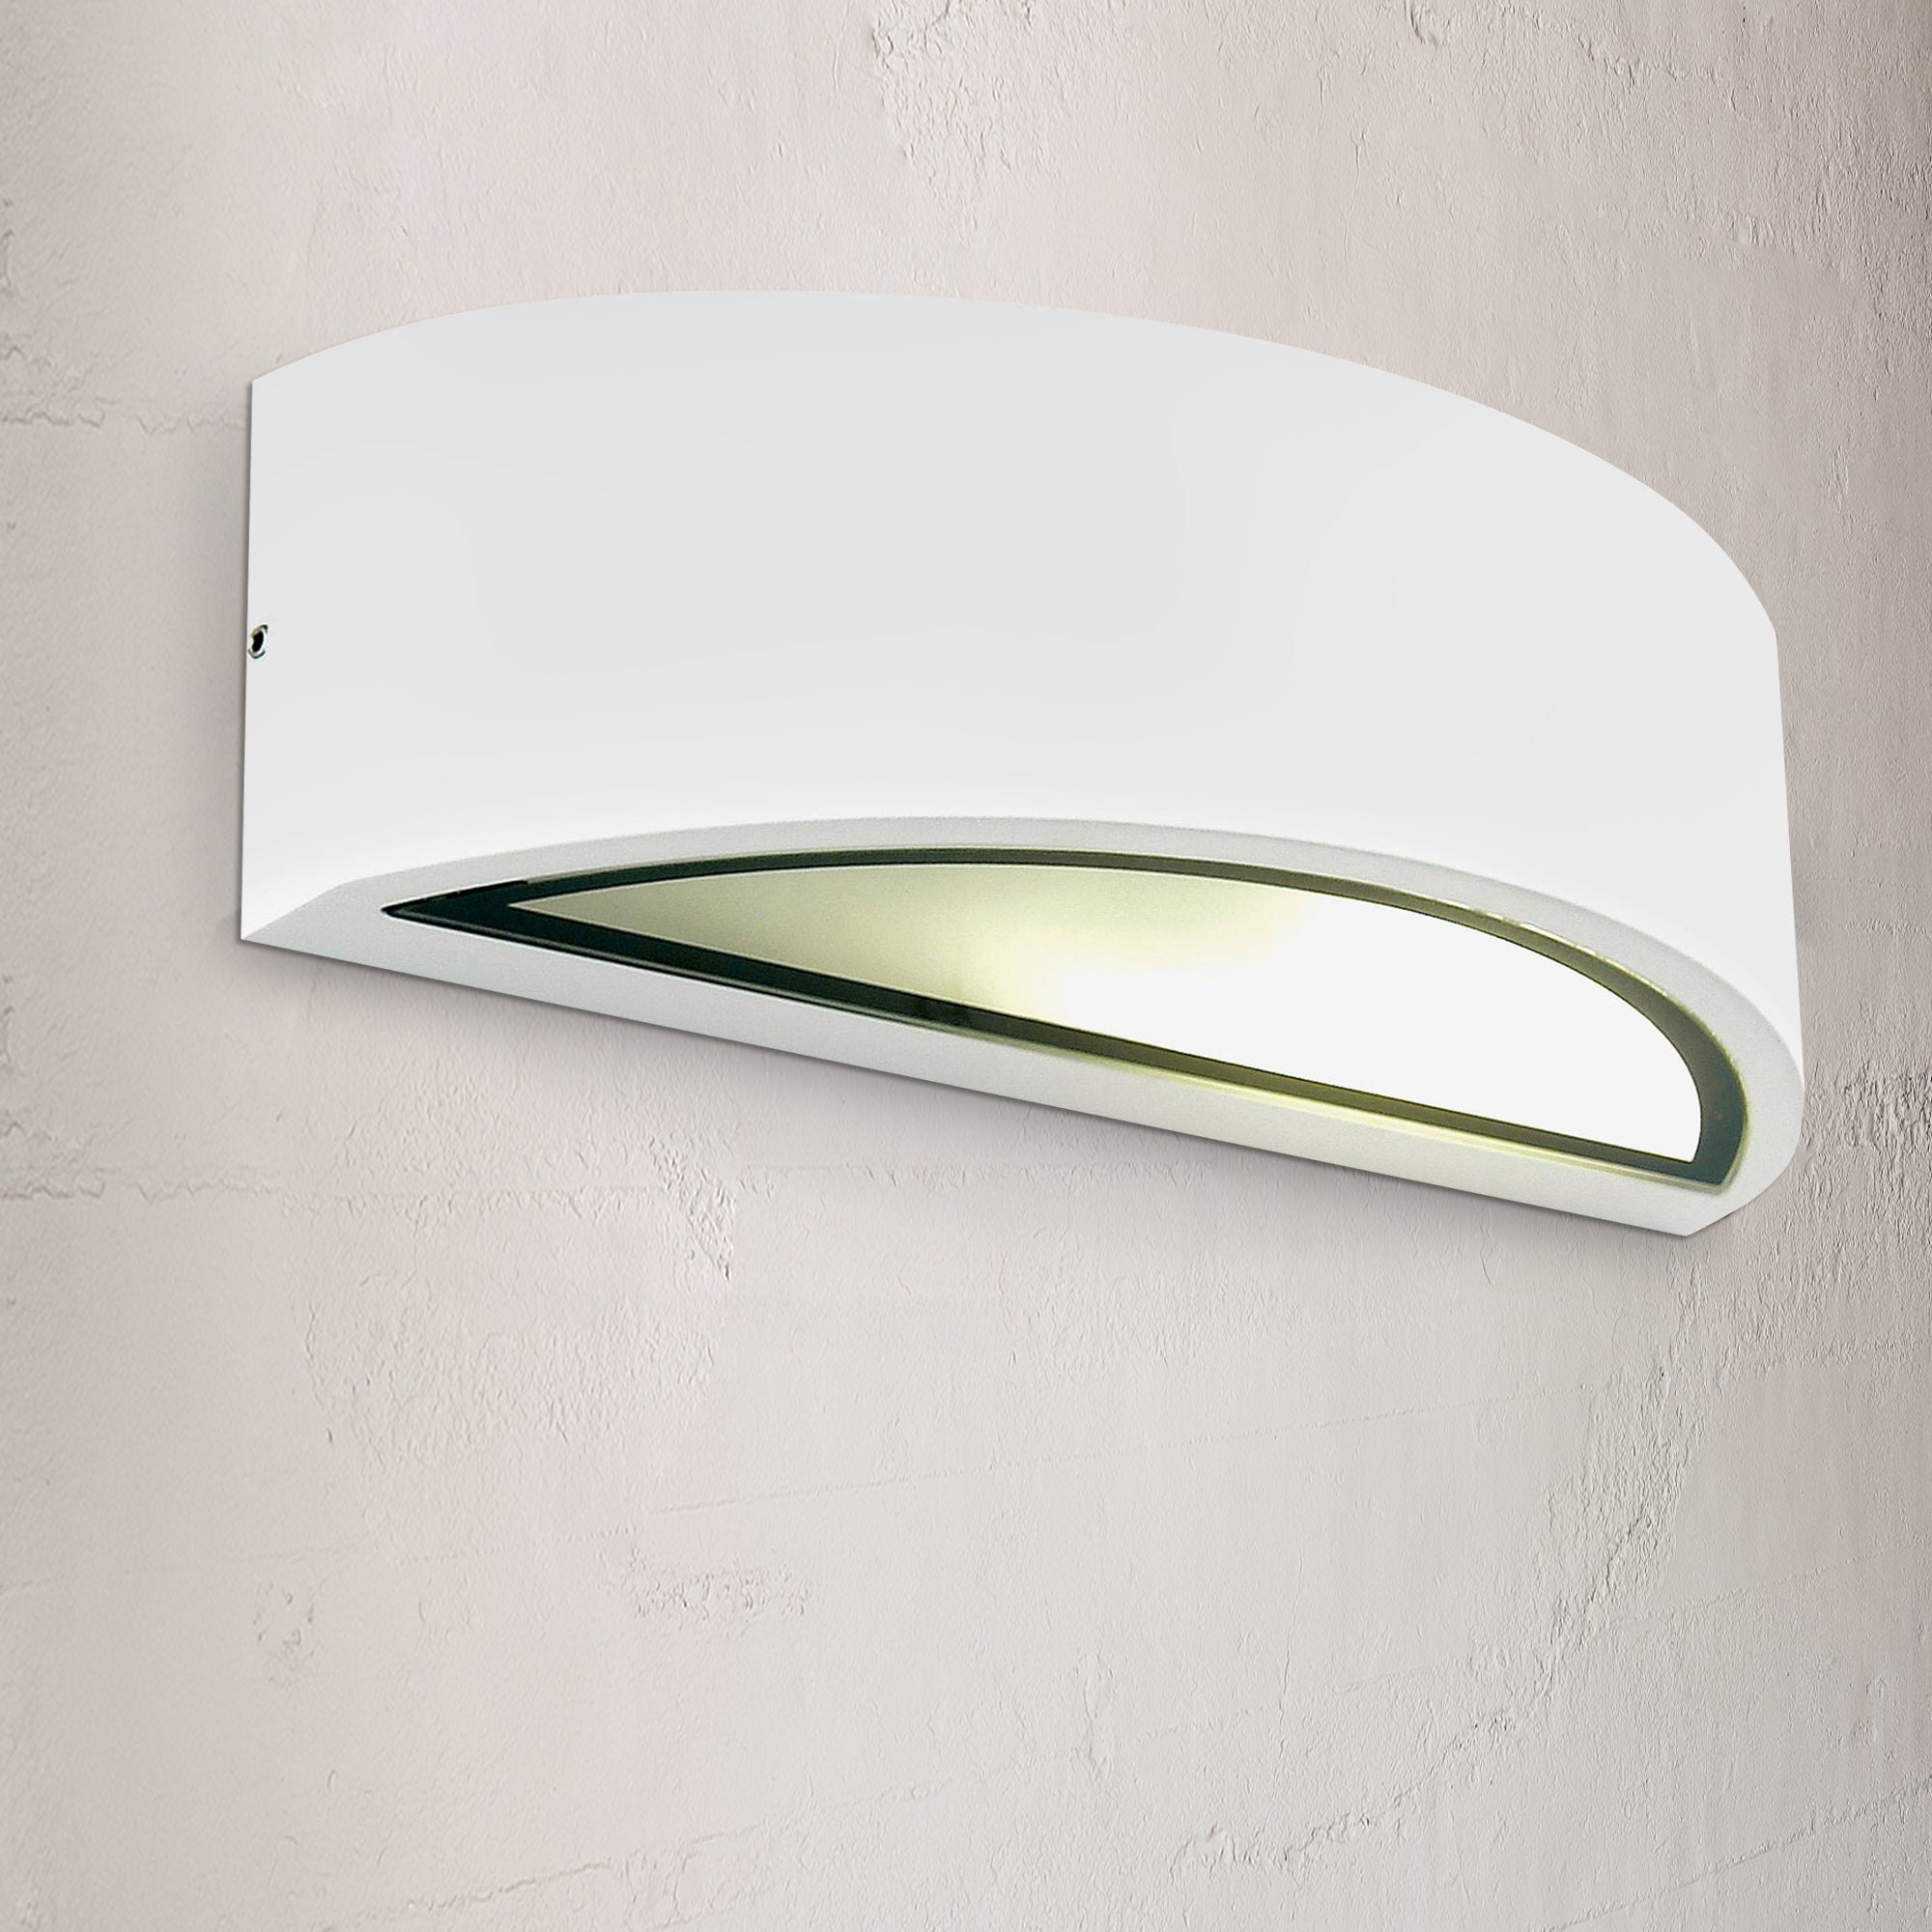 Image of Selene White Curved Up Down Wall Light White